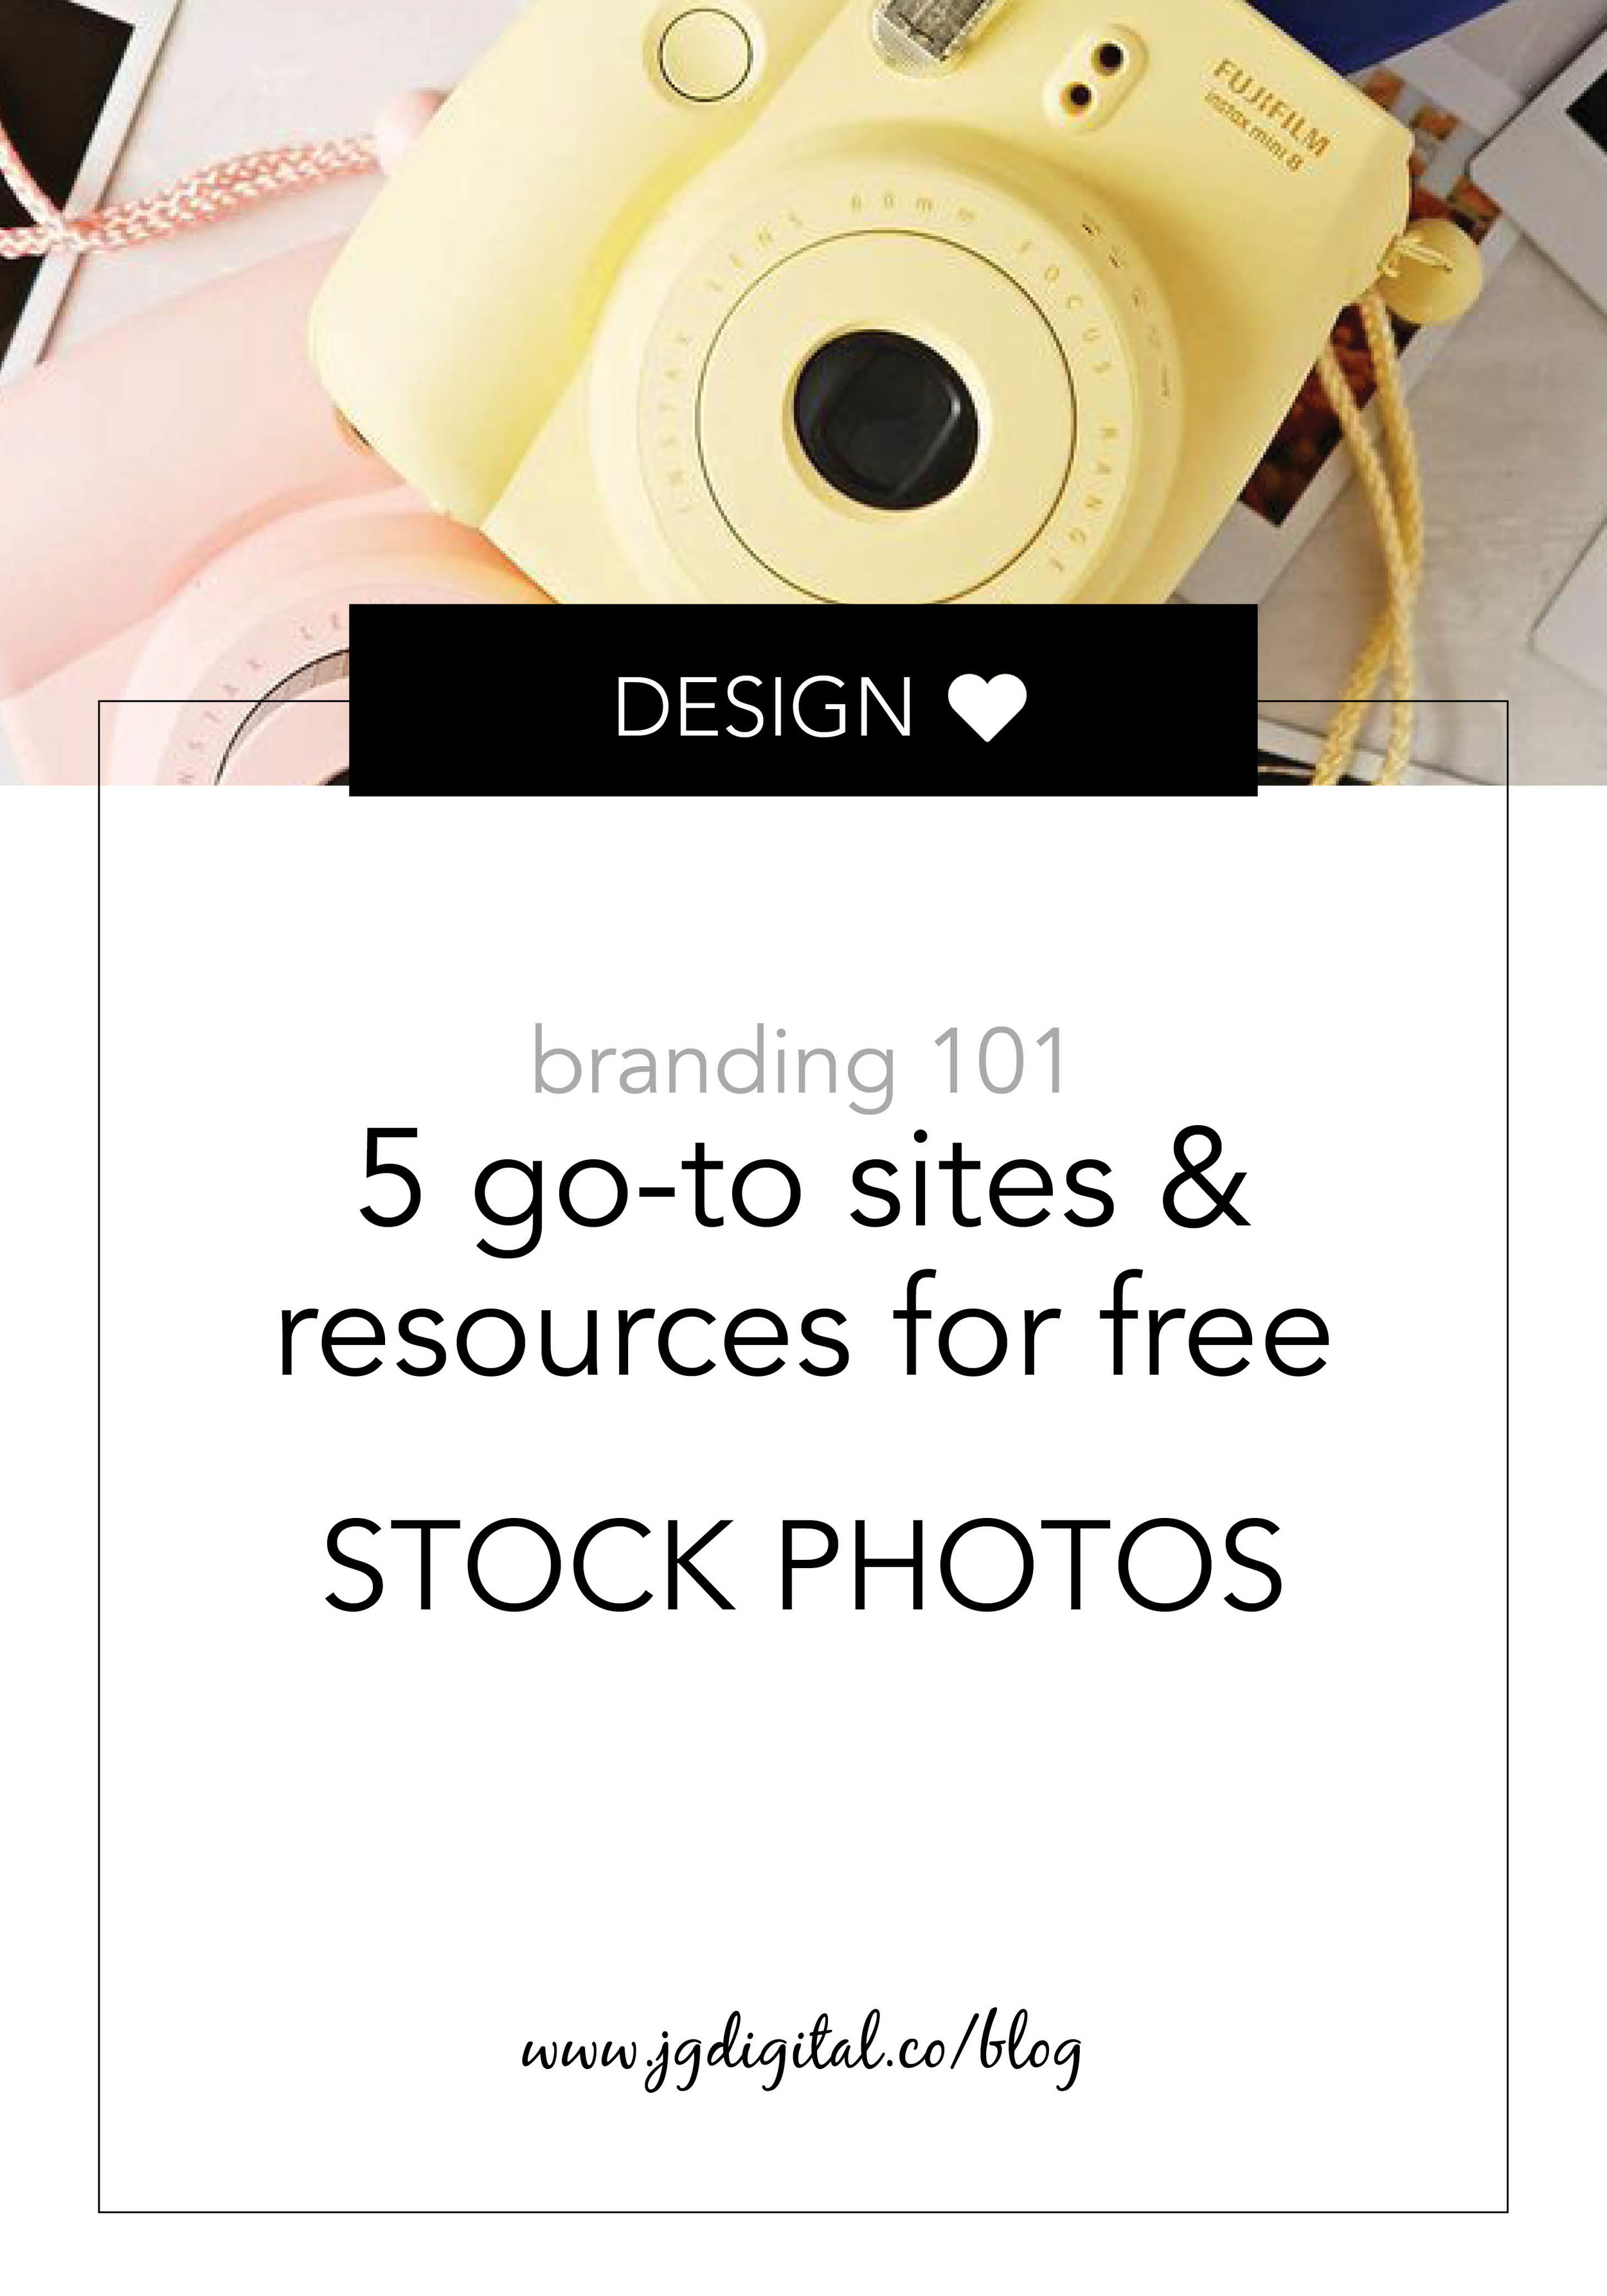 5 Go-To Sites & Resources for FREE & Unique Stock Photos by jgdigital.co